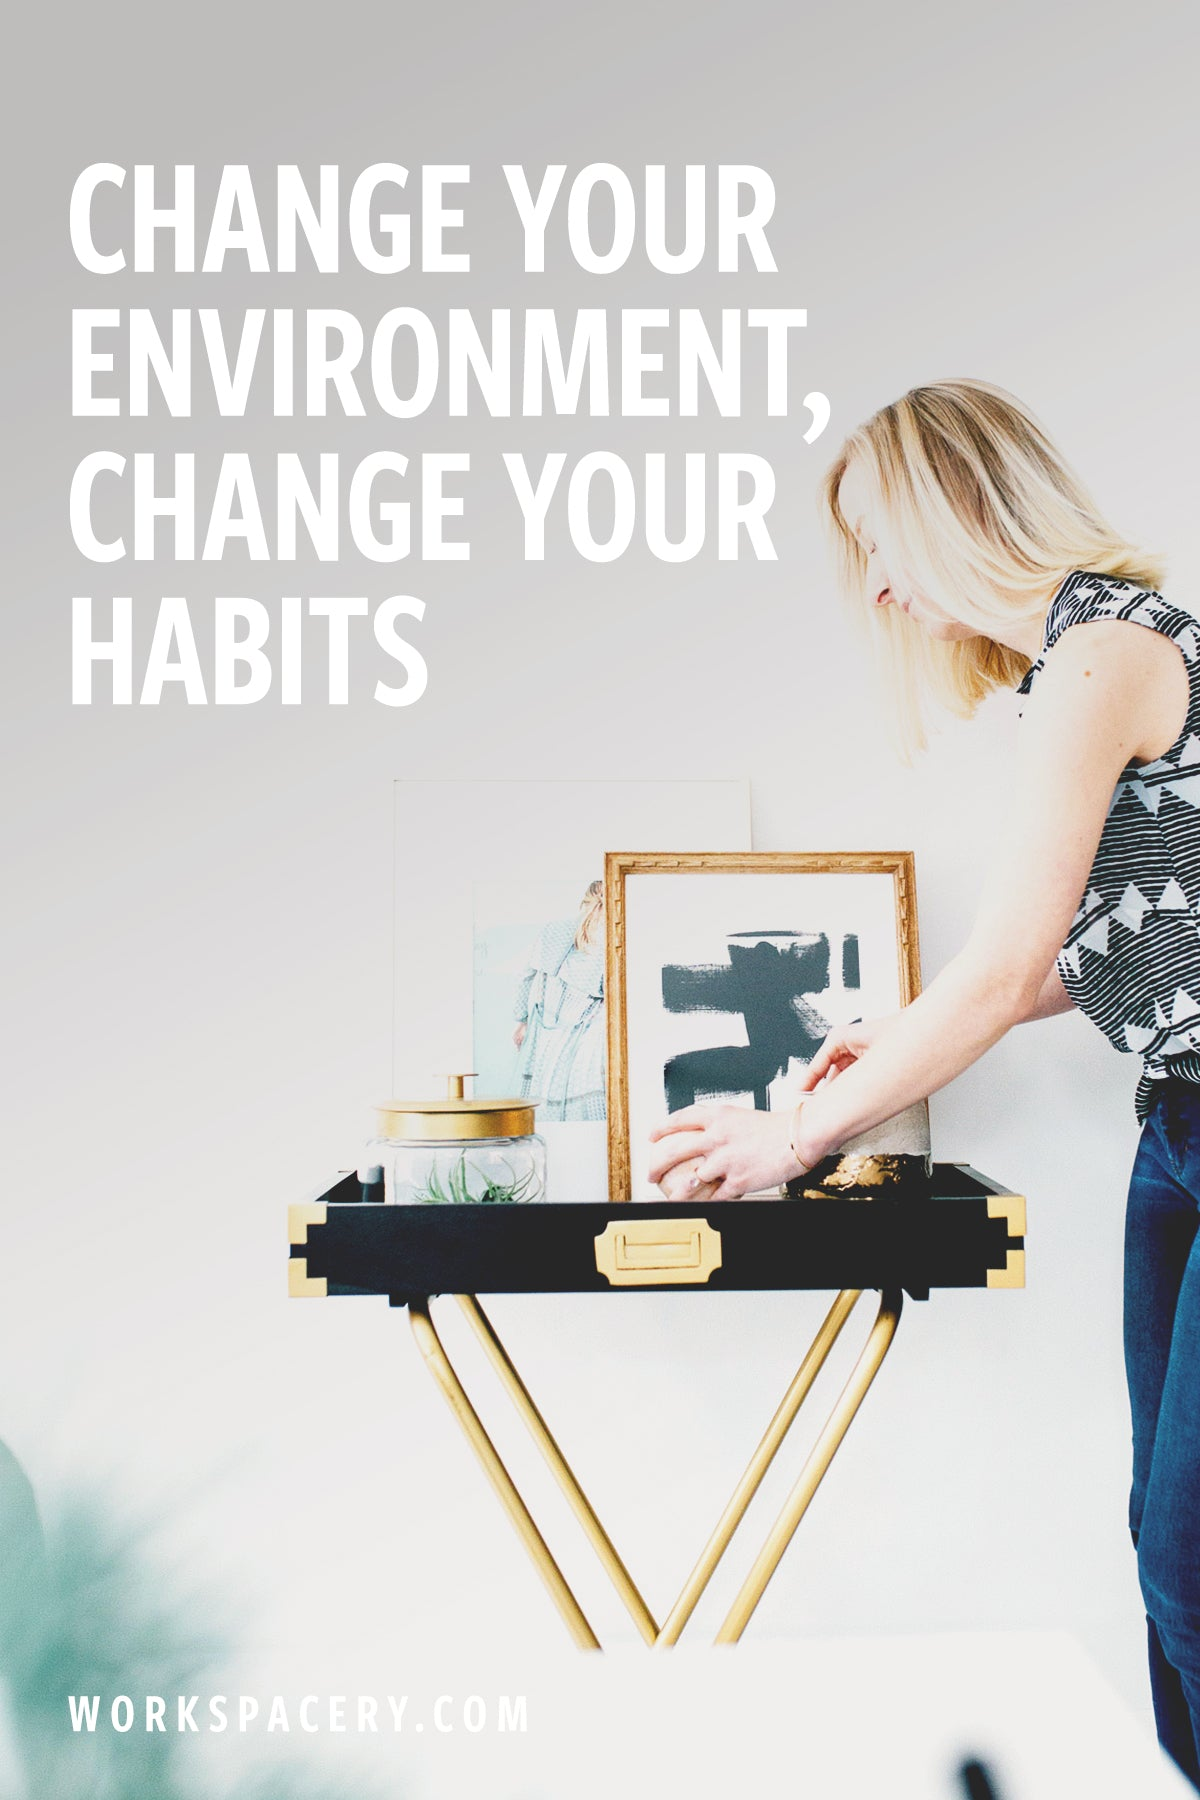 Change Your Environment, Change Your Habits